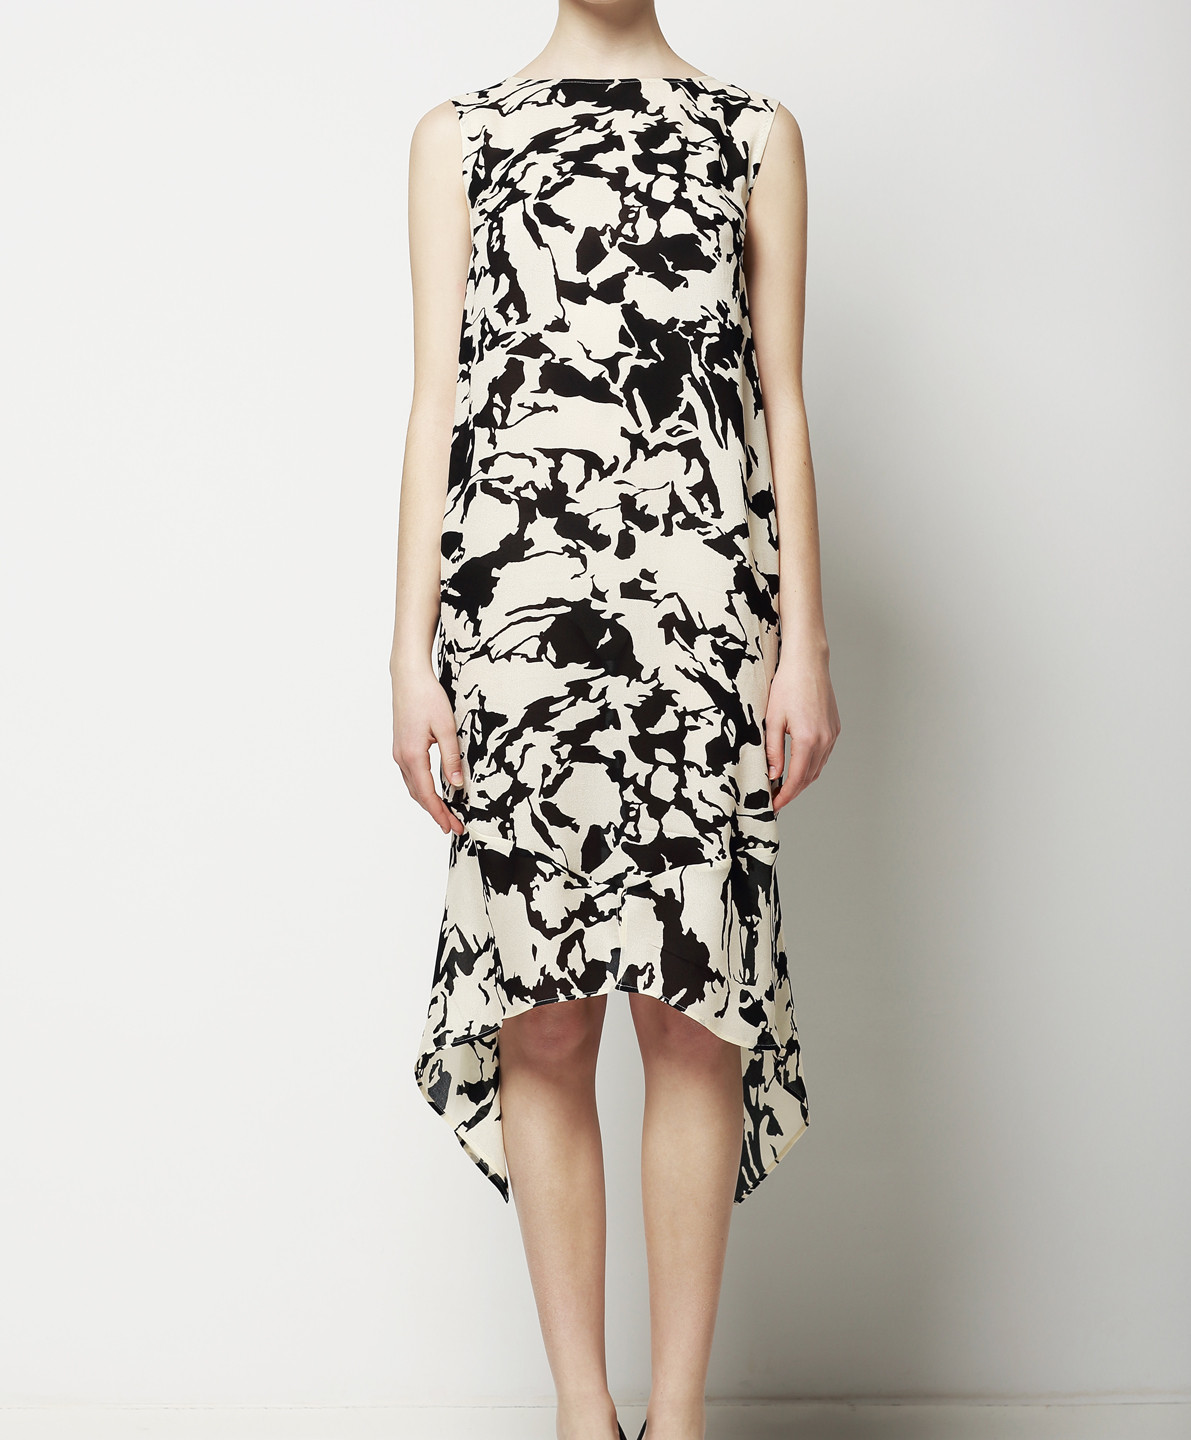 Black and White Abstract Print Dress